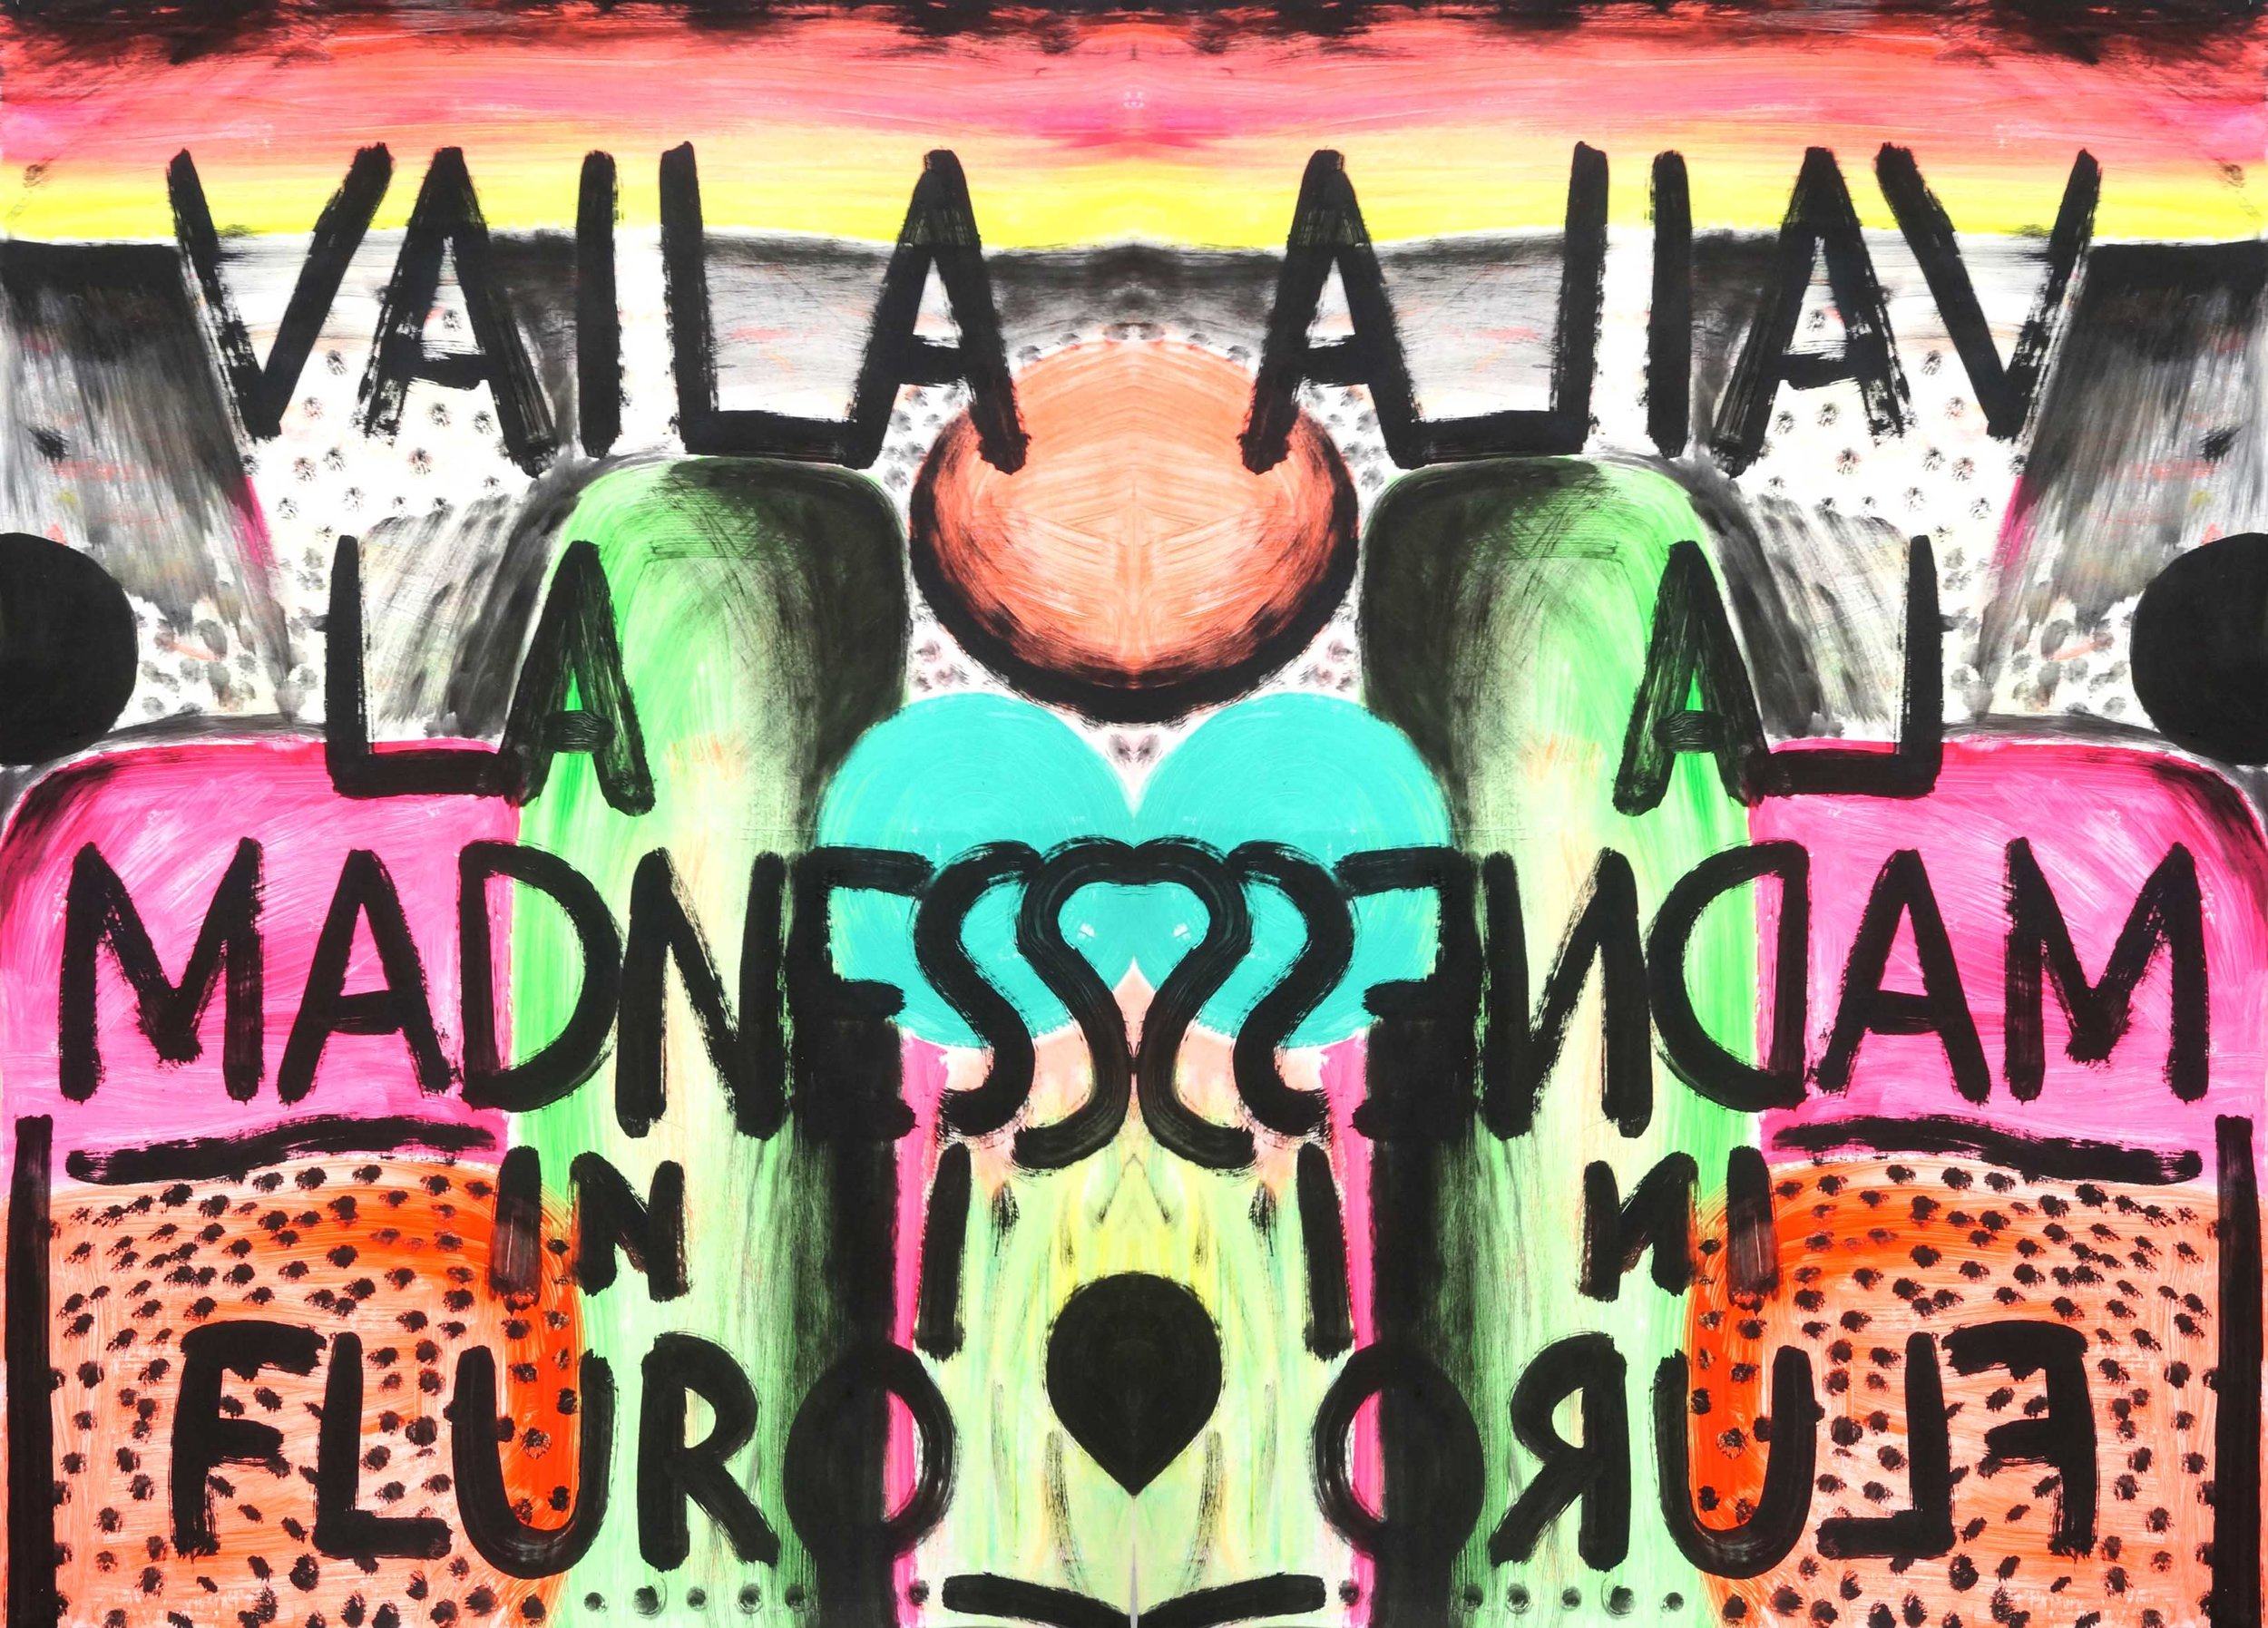 Vailala madness, 2013-2016  acrylic and oil on paper and type c print  110x180cm